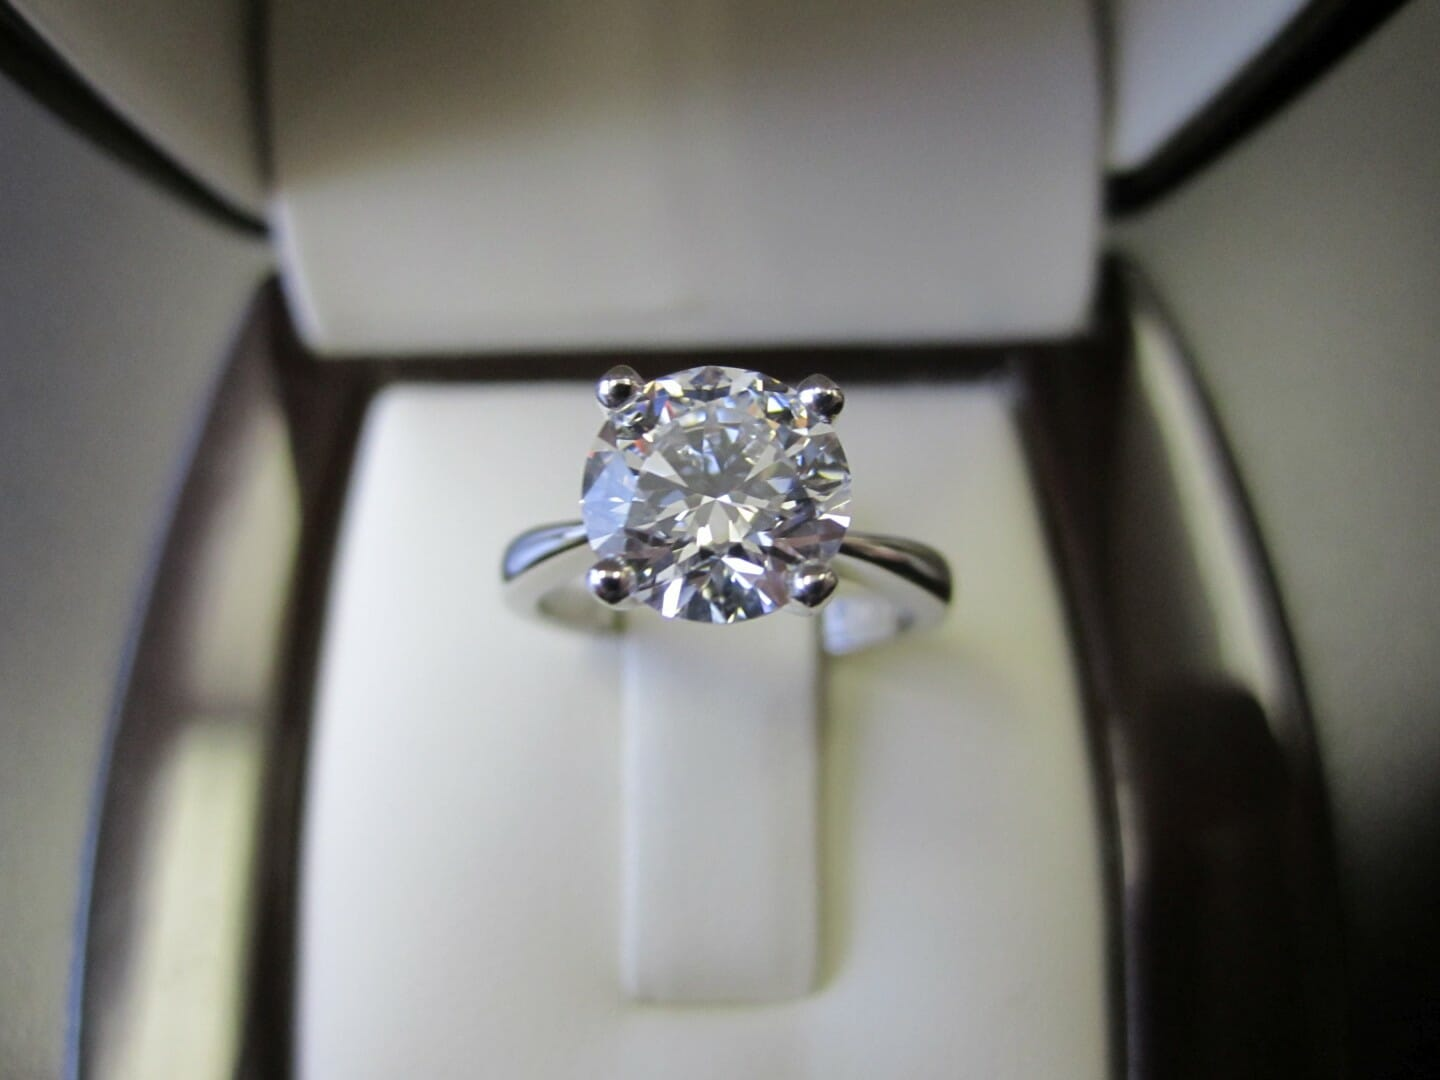 Picture of 1.88ct Round, D, Flawless Diamond in a Custom Platinum Solitaire Engagement Ring